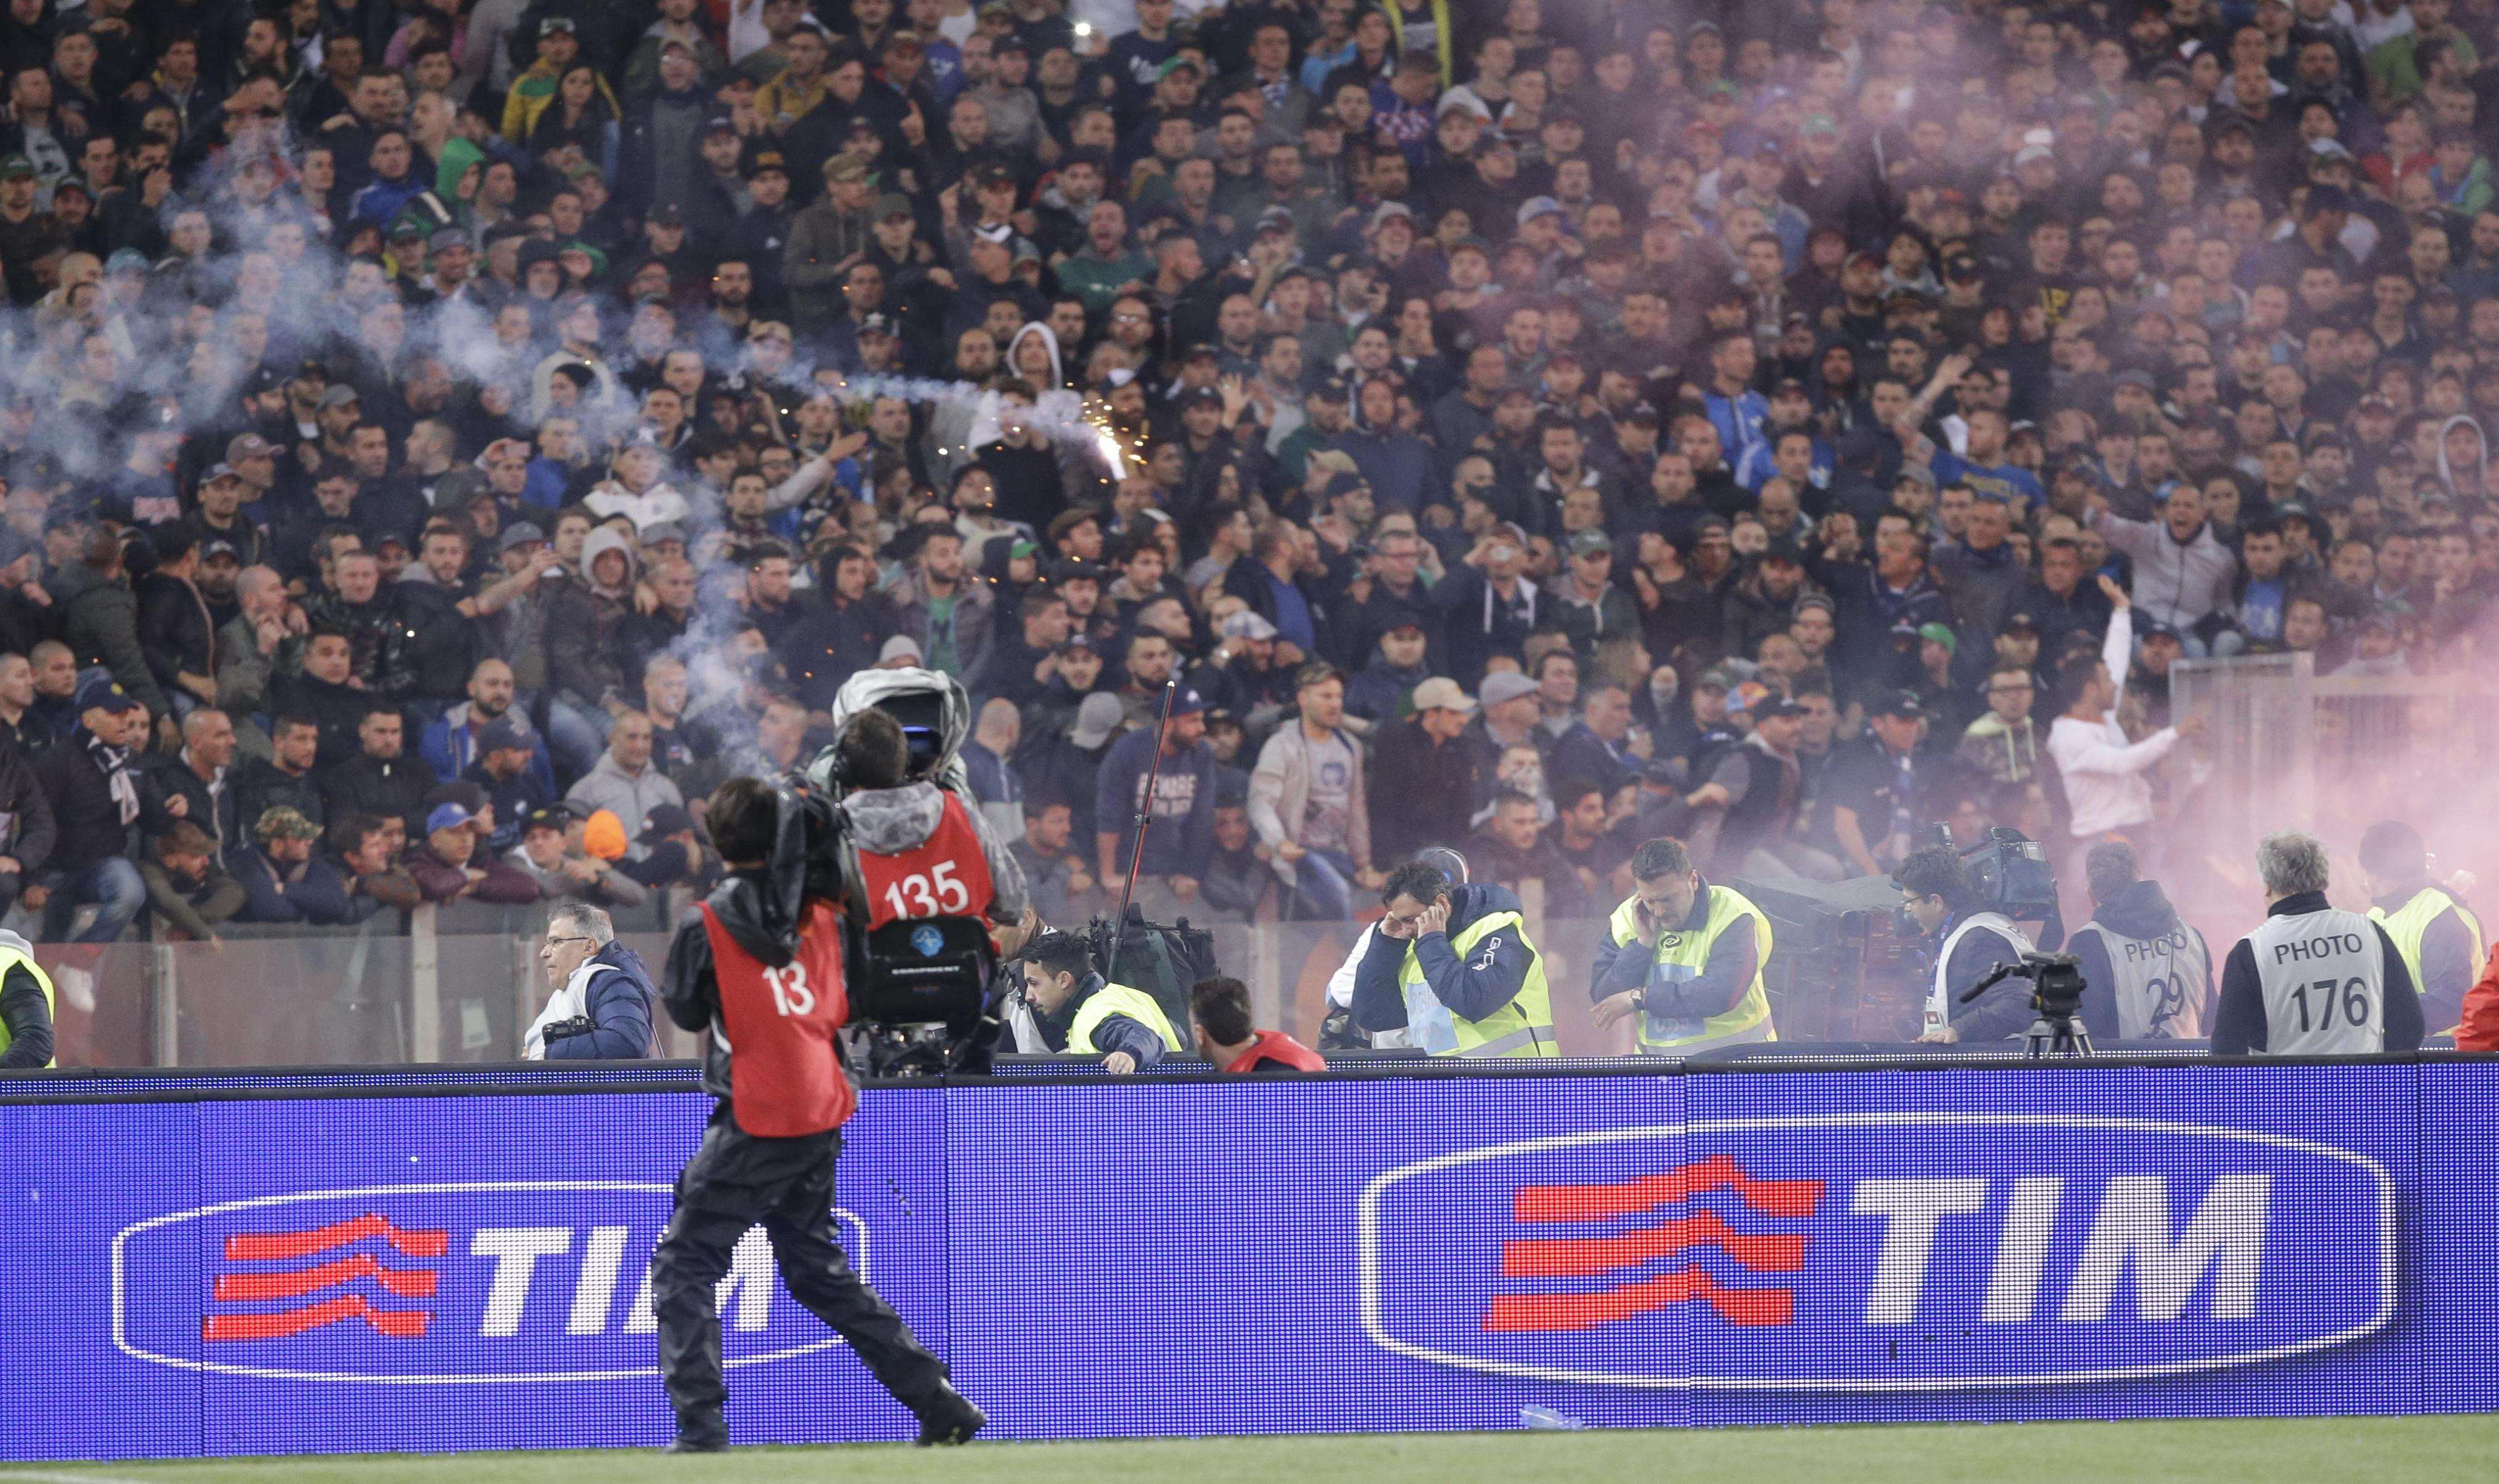 Napoli fans throwing flairs during the Italian Cup final. Foto: AP Images